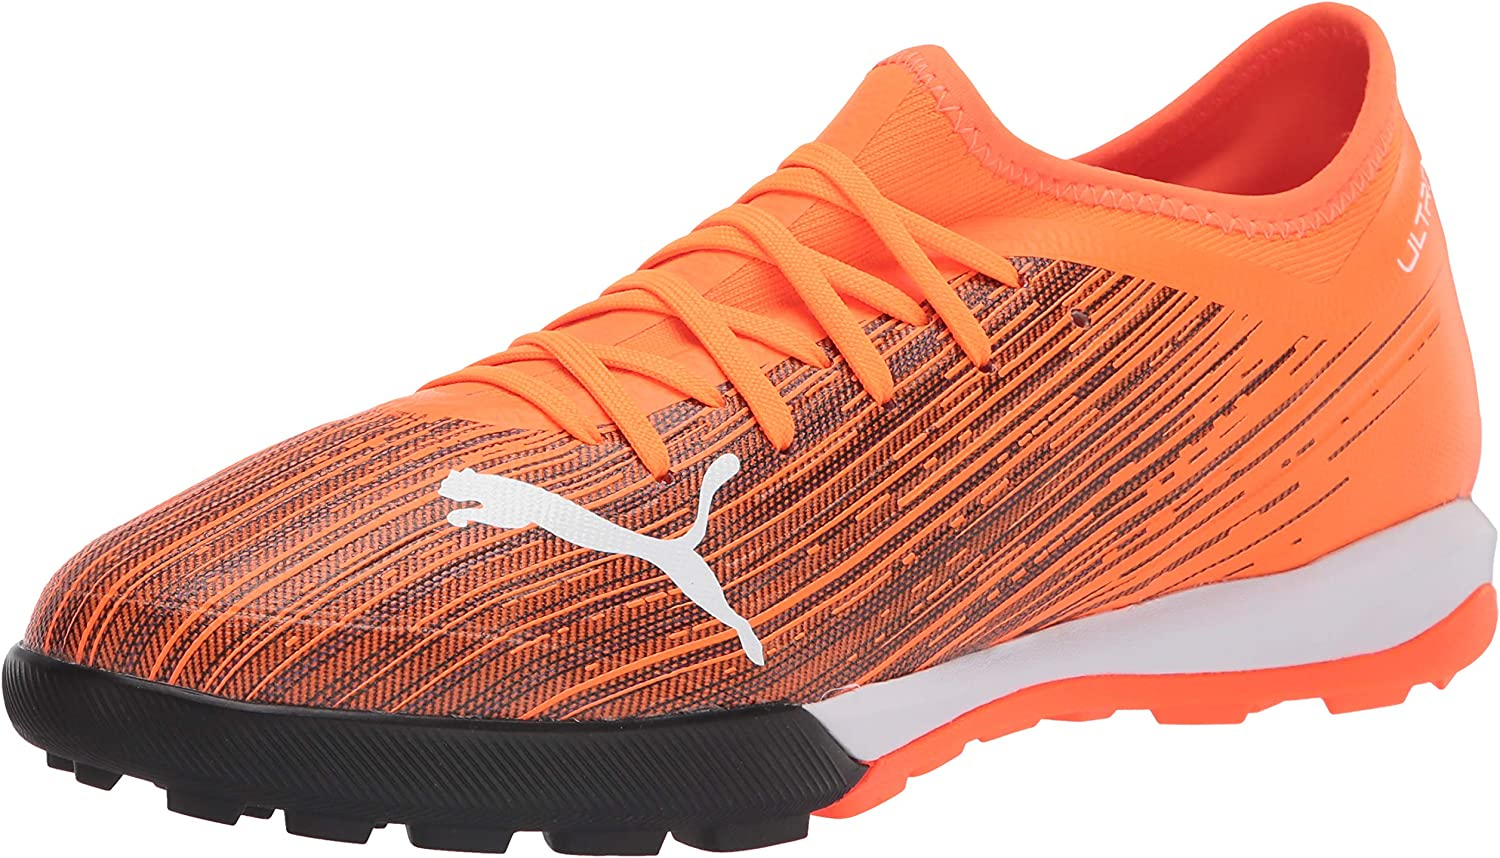 PUMA Popular shop is the lowest price challenge Men's Ultra 3.1 Soccer-Shoe Turf Trainer Gifts